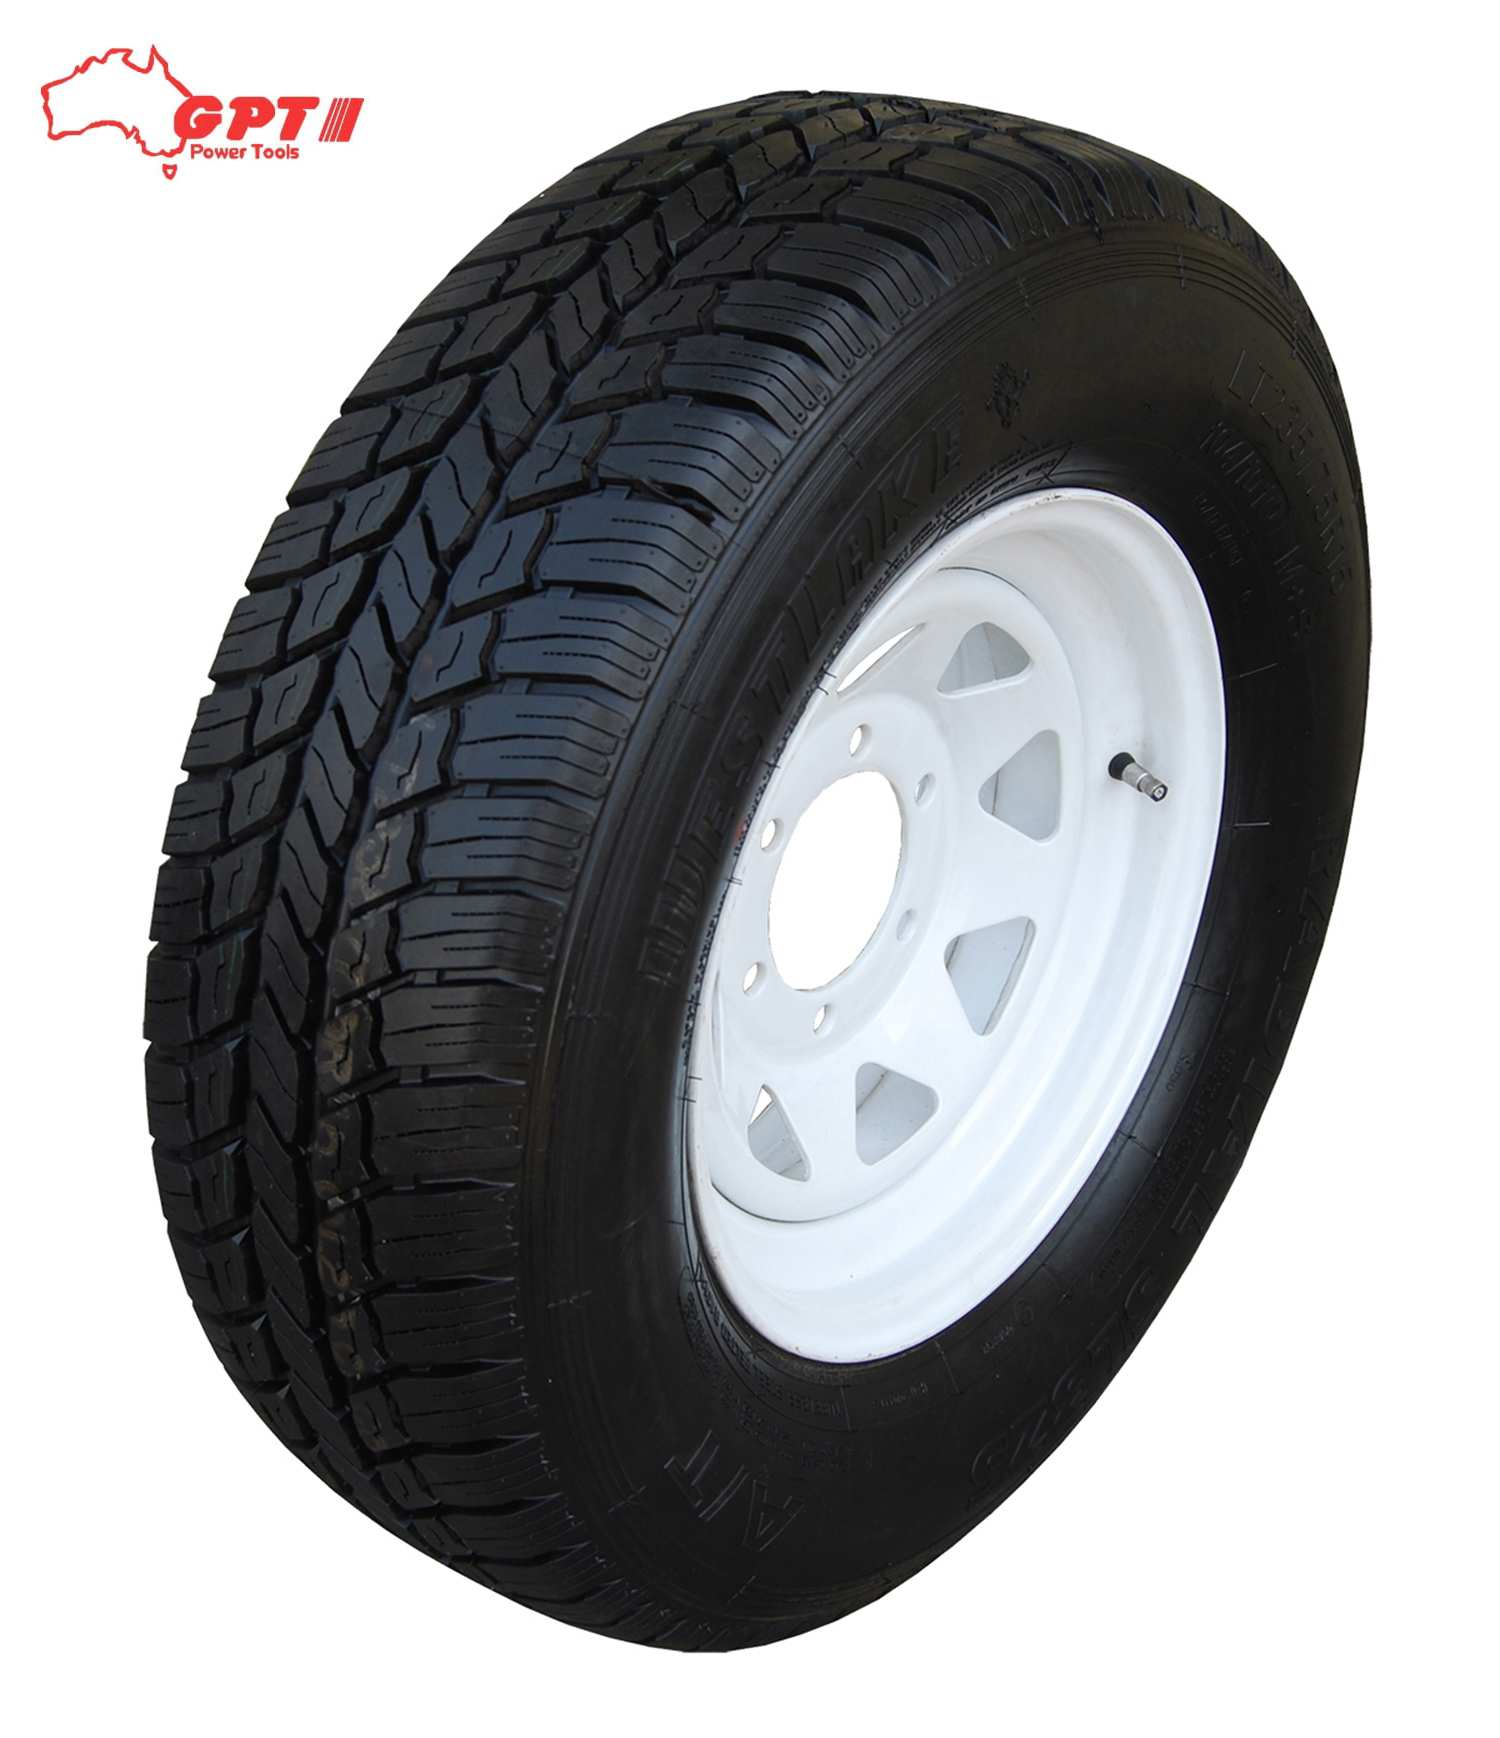 14 Inch Wheel For 8x5 Trailer